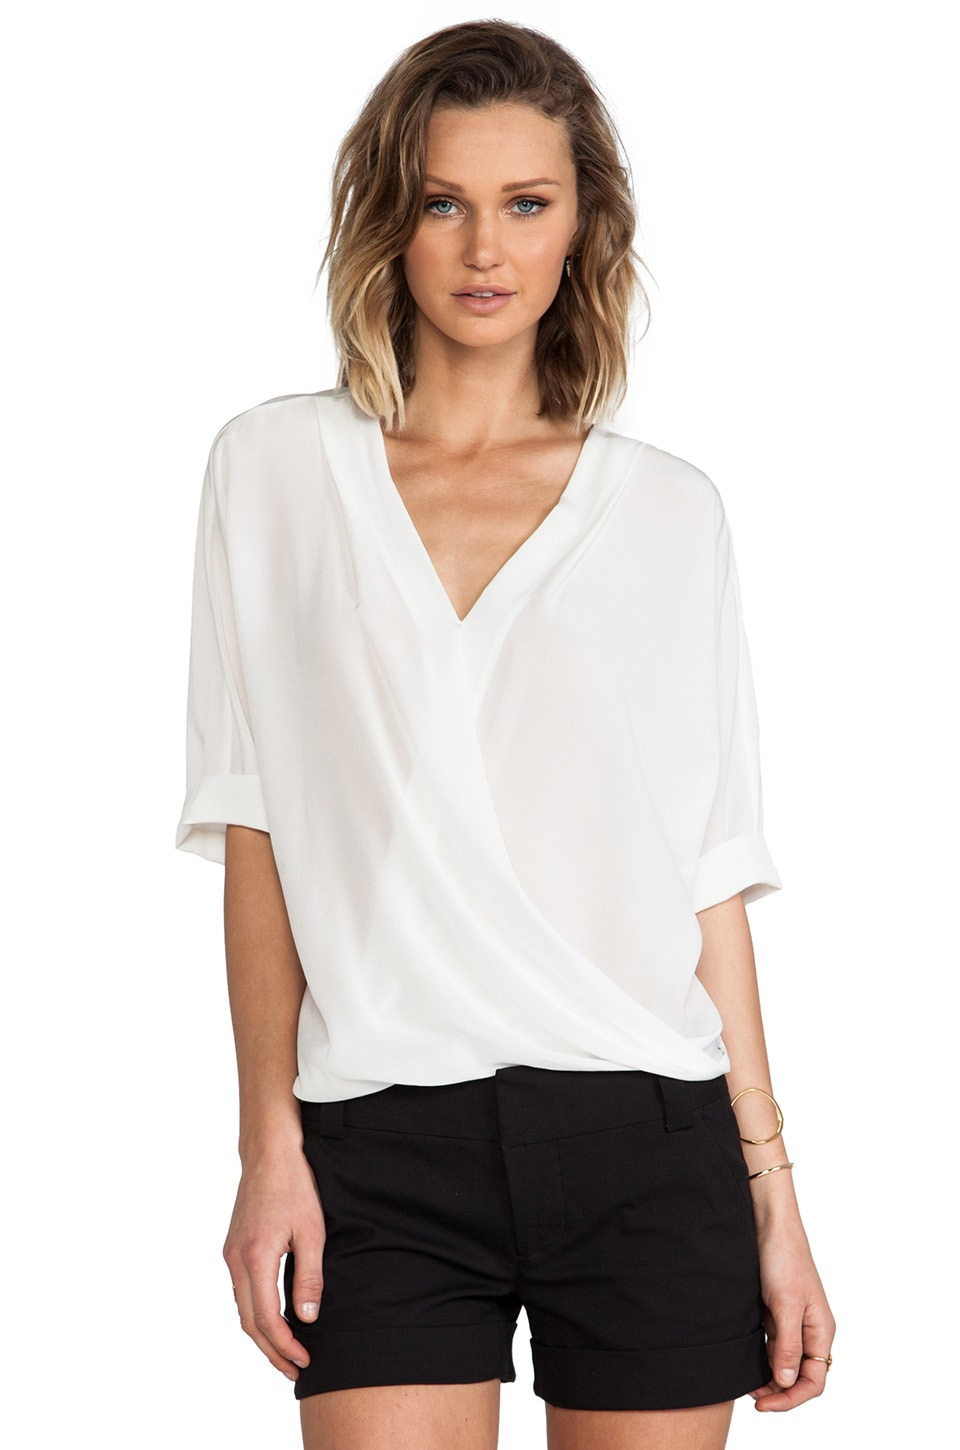 Trina Turk Coral Top in Whitewash